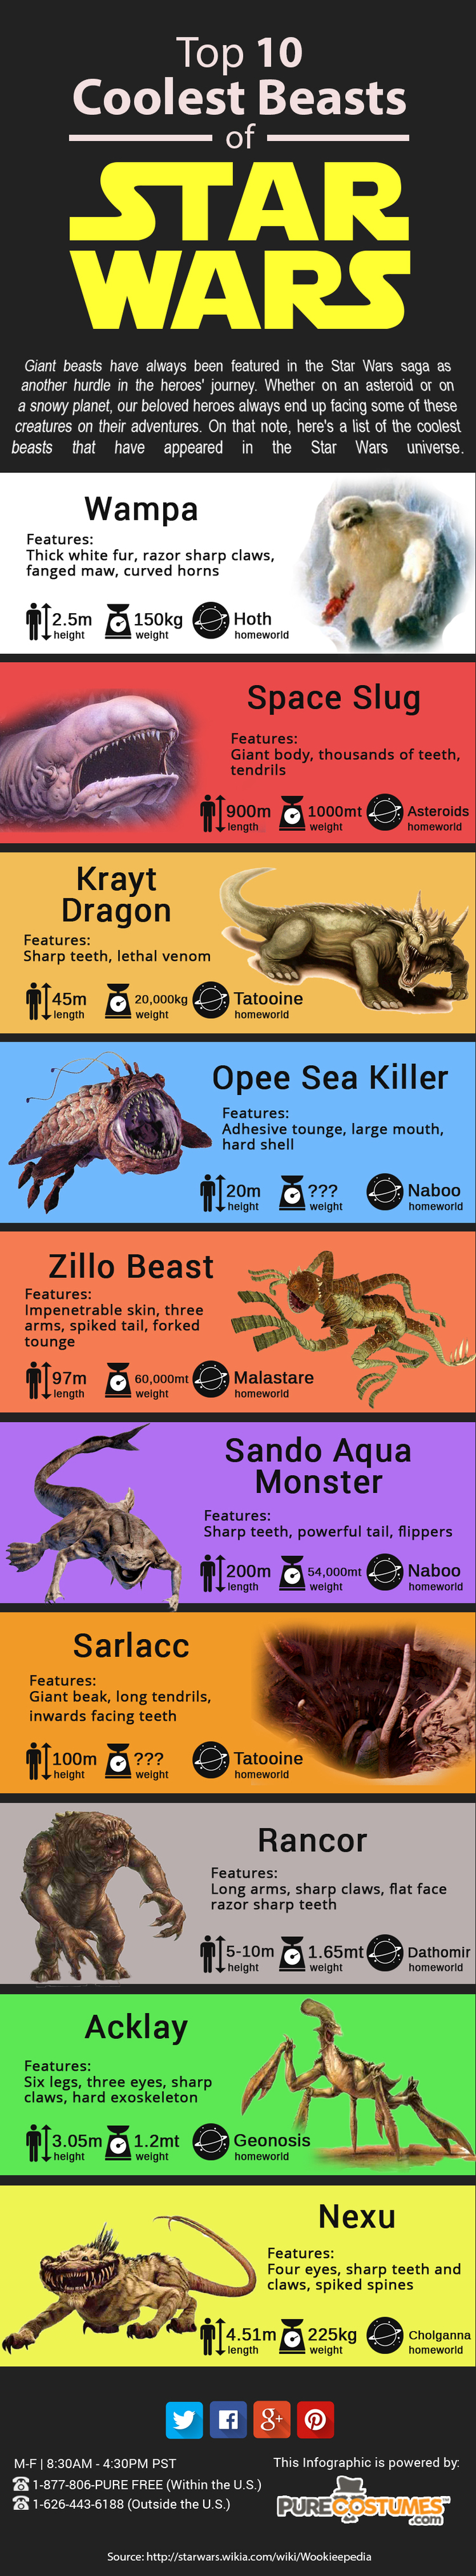 top-10-coolest-beasts-from-the-star-wars-universe-infographic